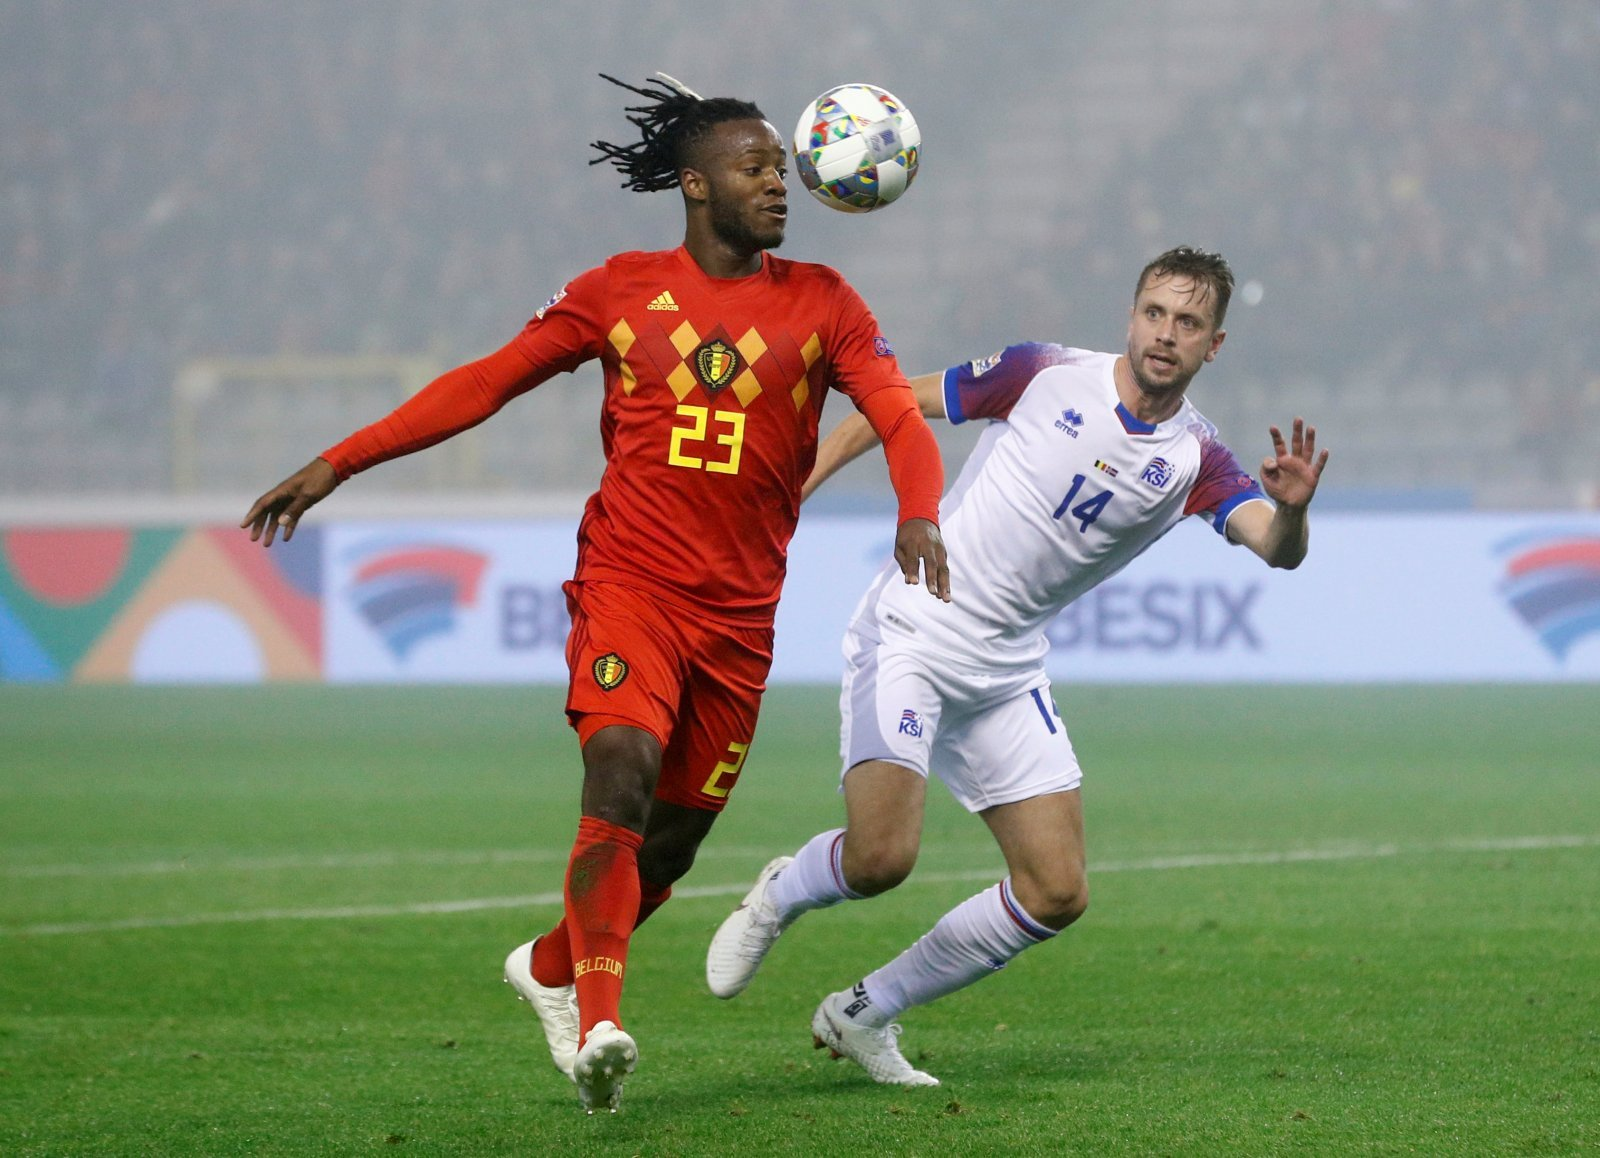 Opinion: Michy Batshuayi could breathe new life into Crystal Palace's attack